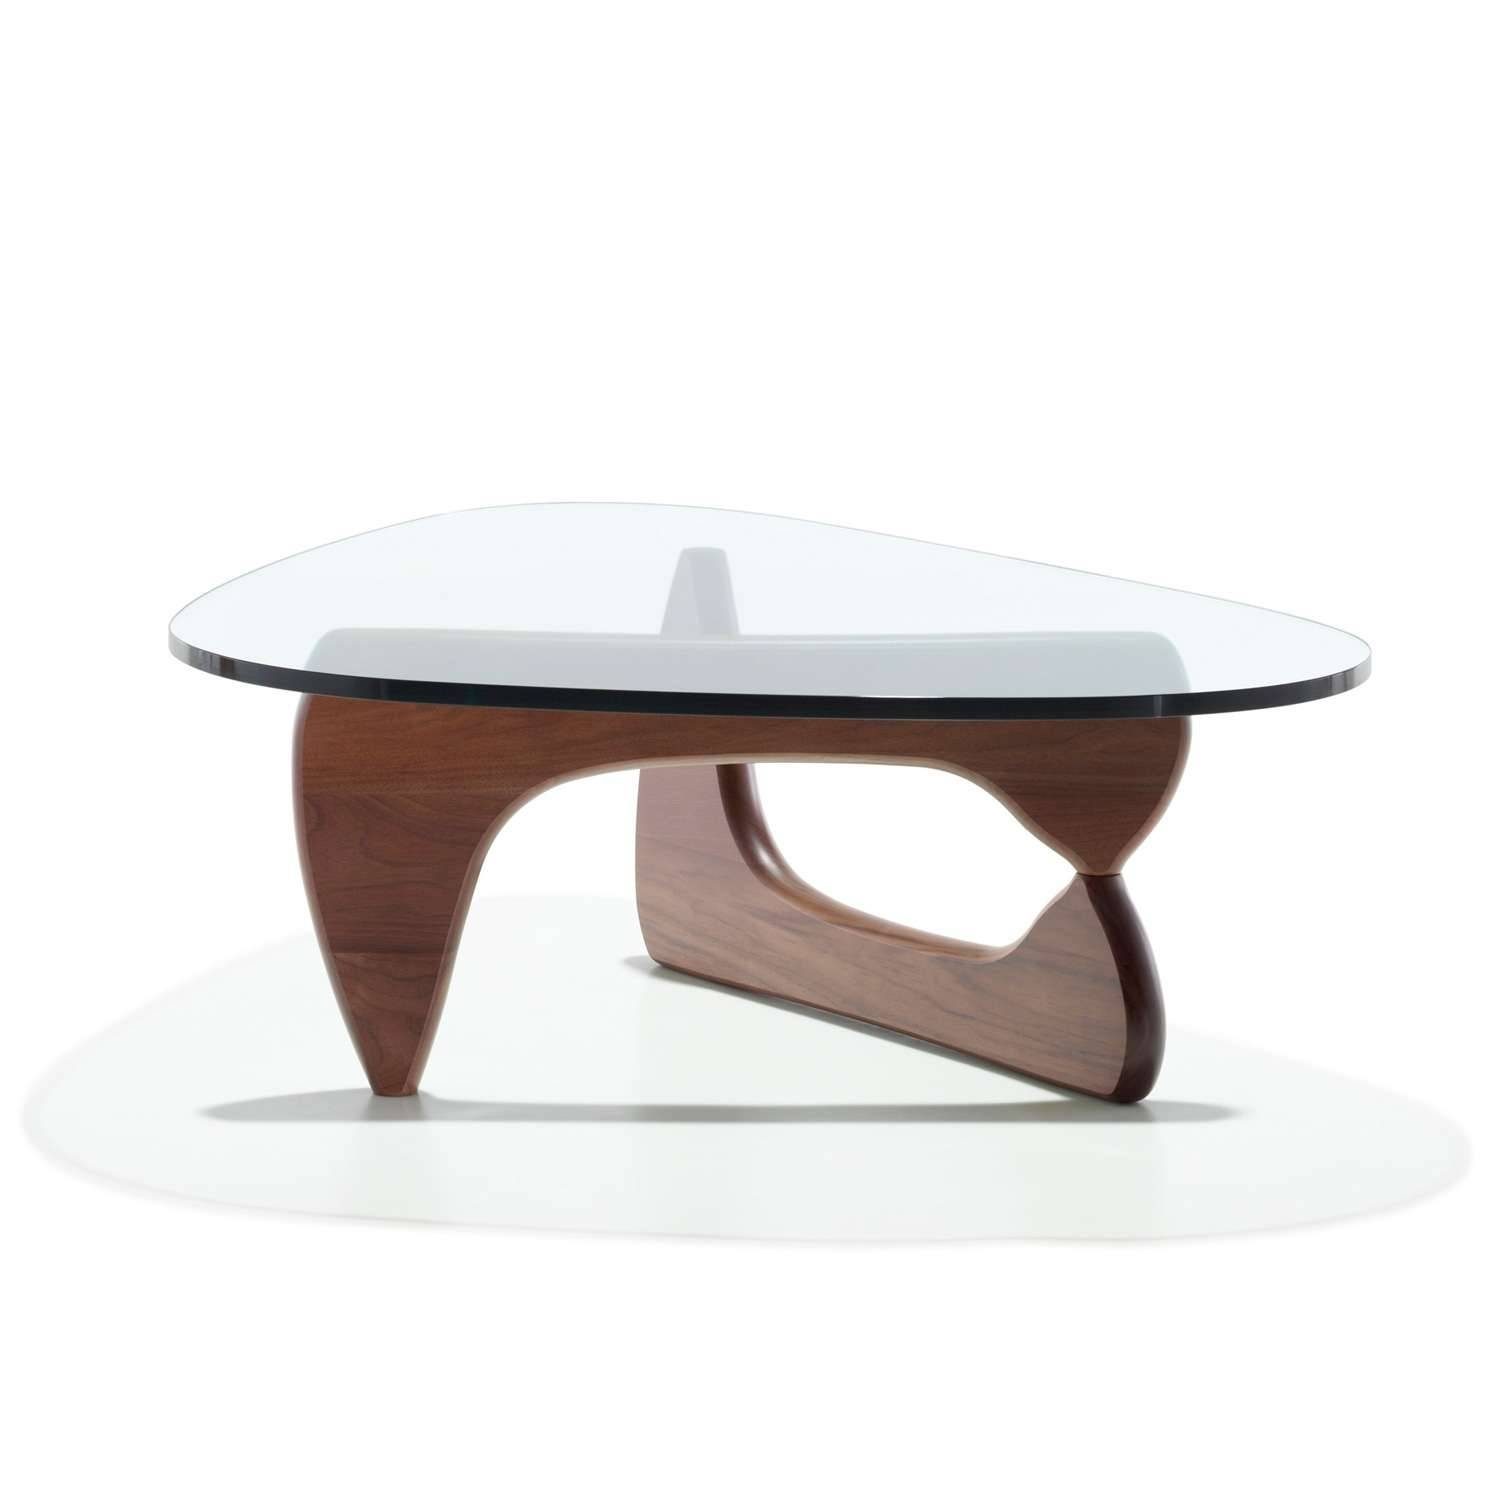 Noguchi Coffee Tableherman Miller | Yliving with regard to Noguchi Coffee Tables (Image 17 of 30)